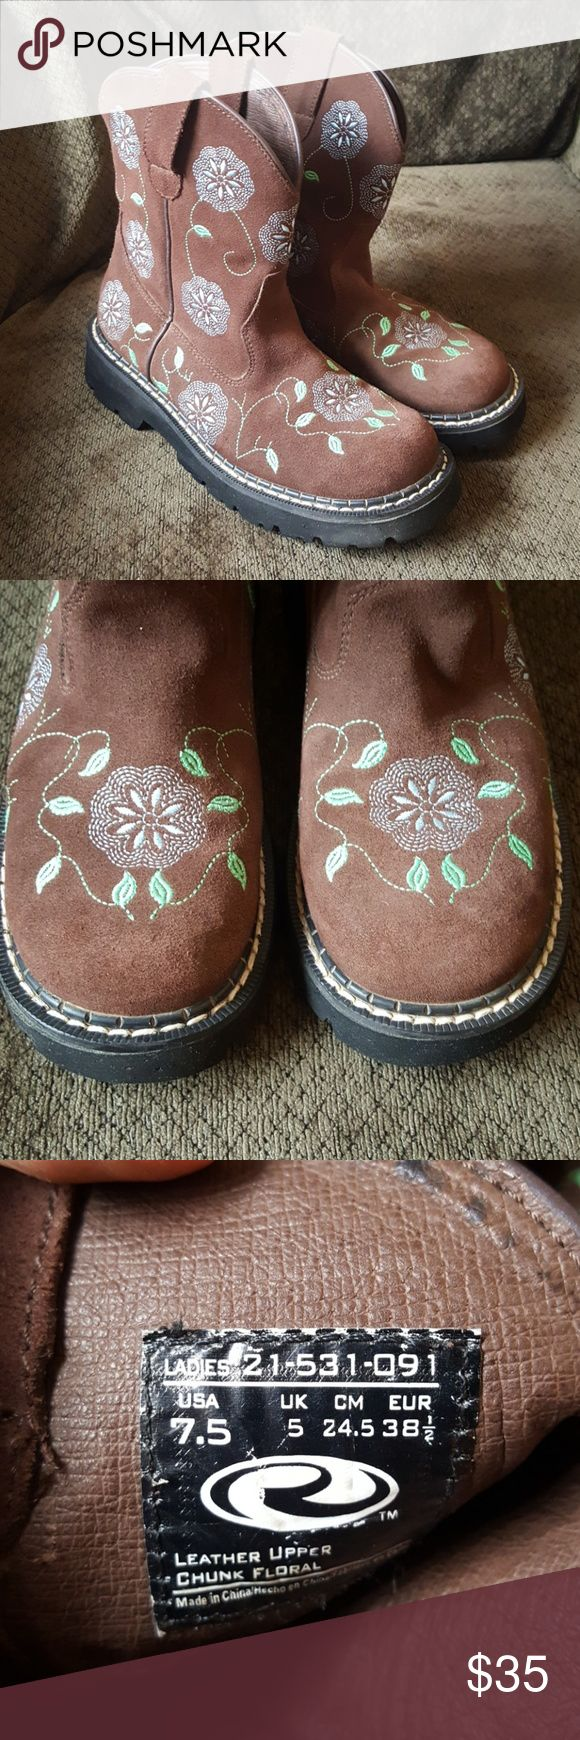 Roper dark brown leather (suede) western boots Leather (suede) chunk floral boots in very good condition.  Height is 7 3/4 inches. No box. Women's size 7 1/2 Roper Shoes Ankle Boots & Booties